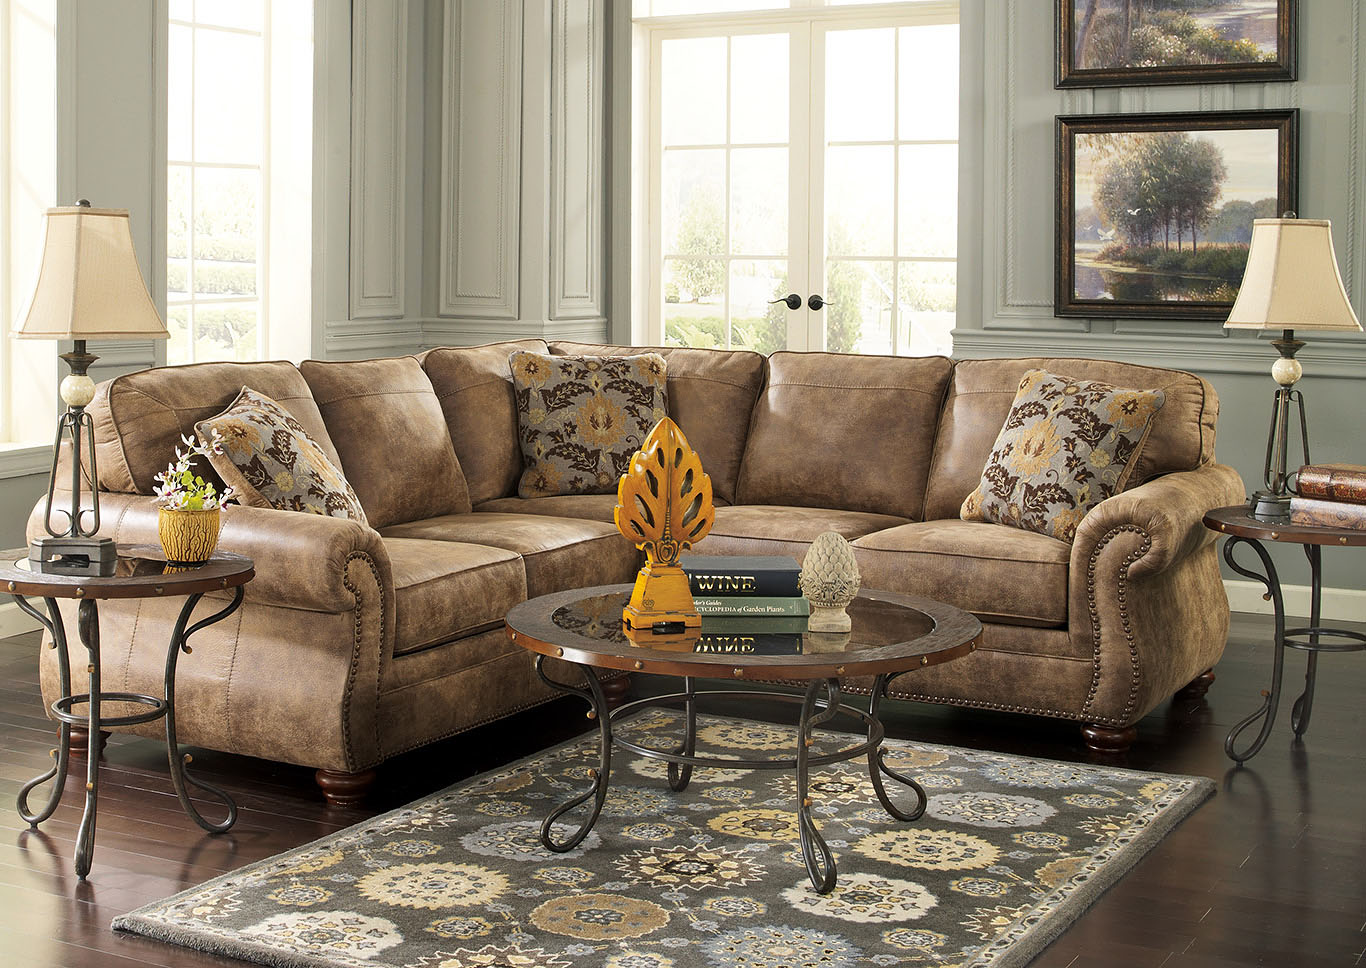 Larkinhurst Earth Sectional,Signature Design by Ashley